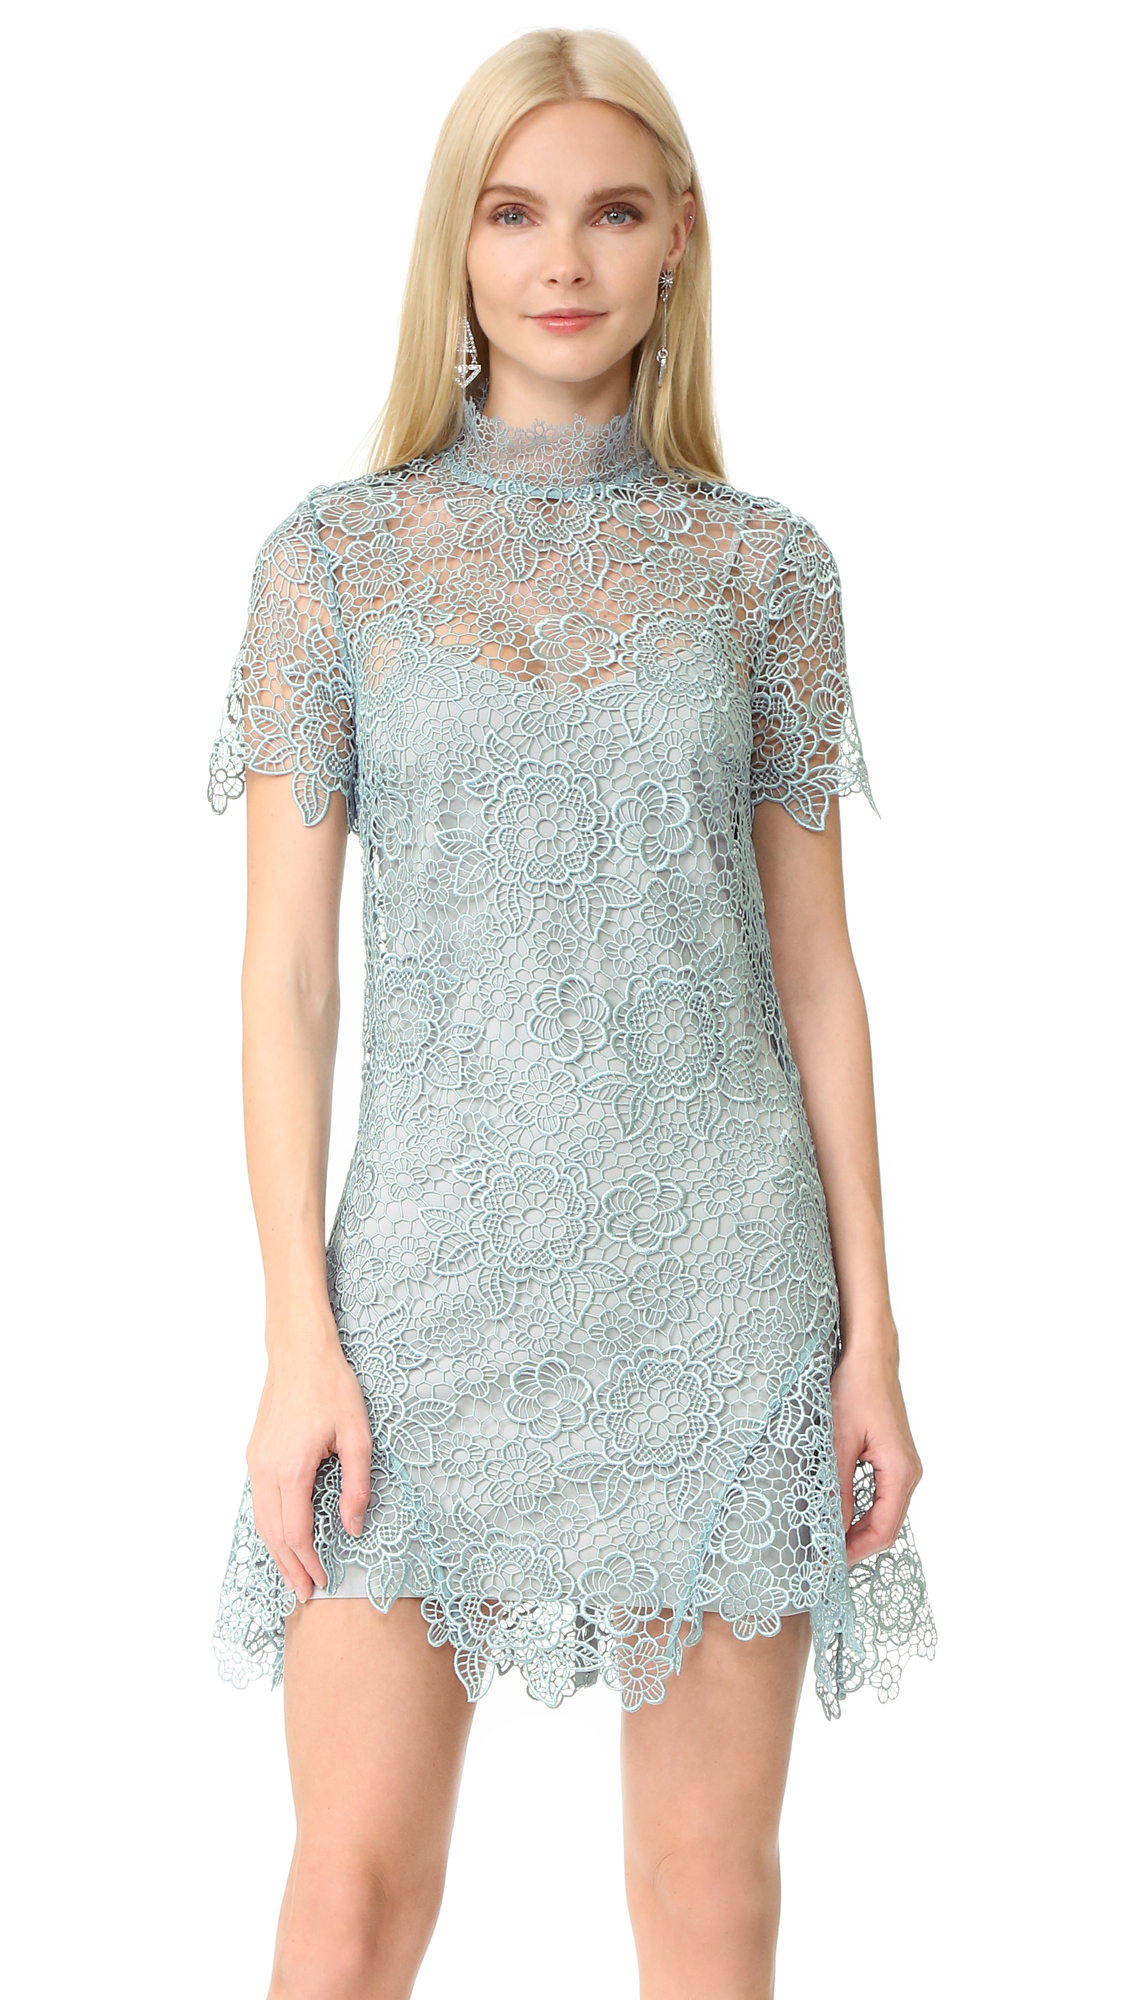 Delicate floral lace brings romantic, feminine style to this Self Portrait mini dress. Flared insets accent the hem, adding flirty swing. High neckline. Sheer sleeves. Exposed zip and grosgrain ribbon ties in back. Optional slip dress